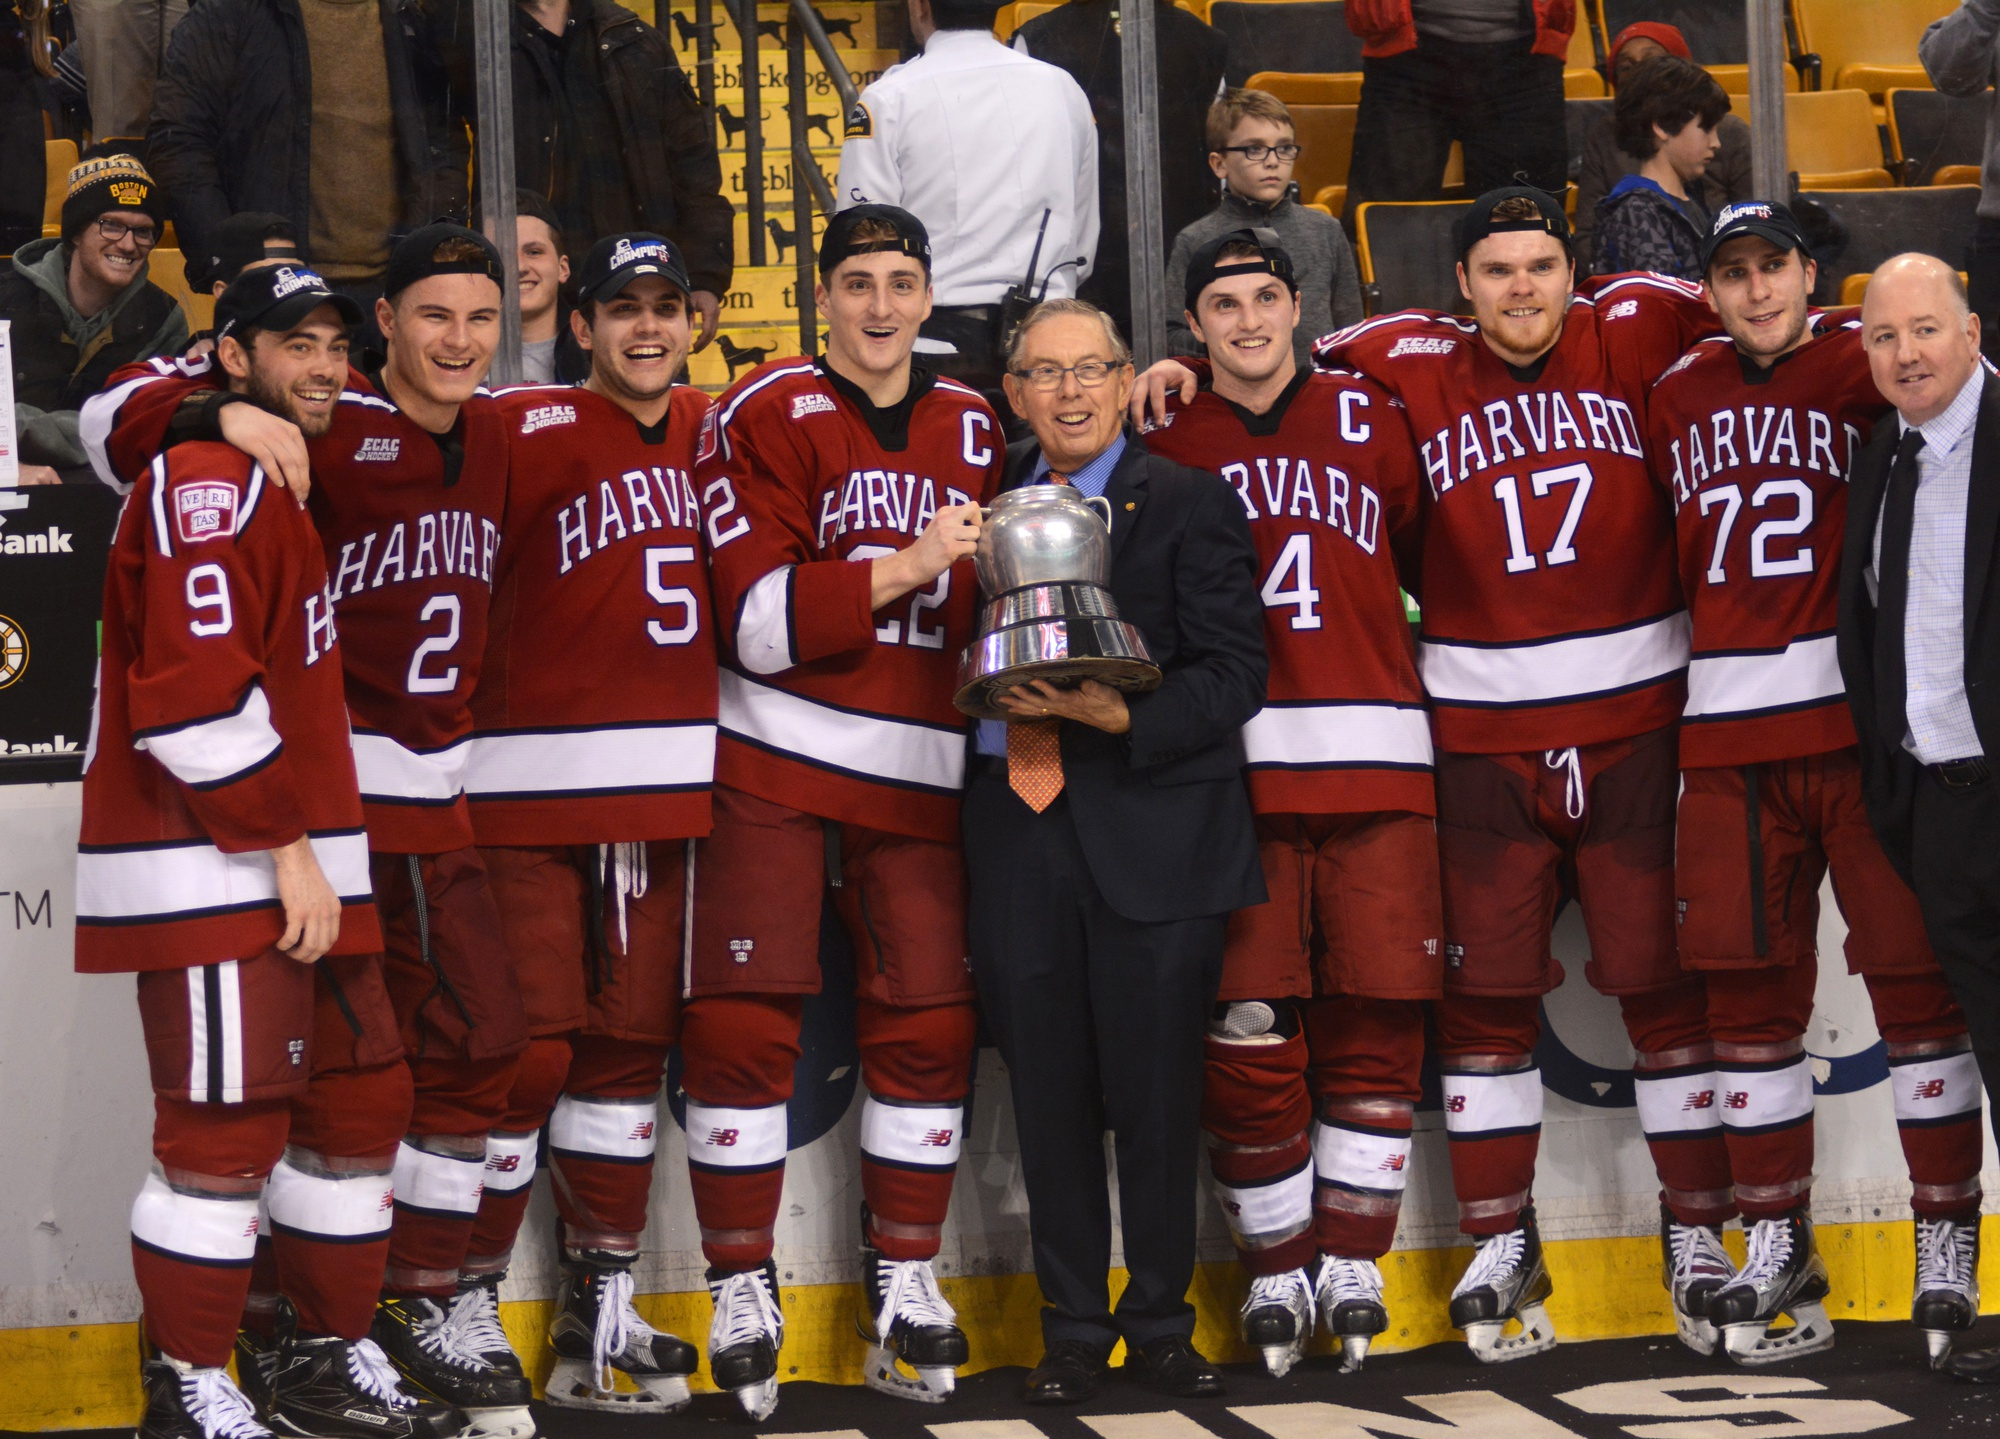 Harvard's senior class, shown receiving the Beanpot trophy back in February, heads to Chicago two wins away from the program's first national championship since 1989.